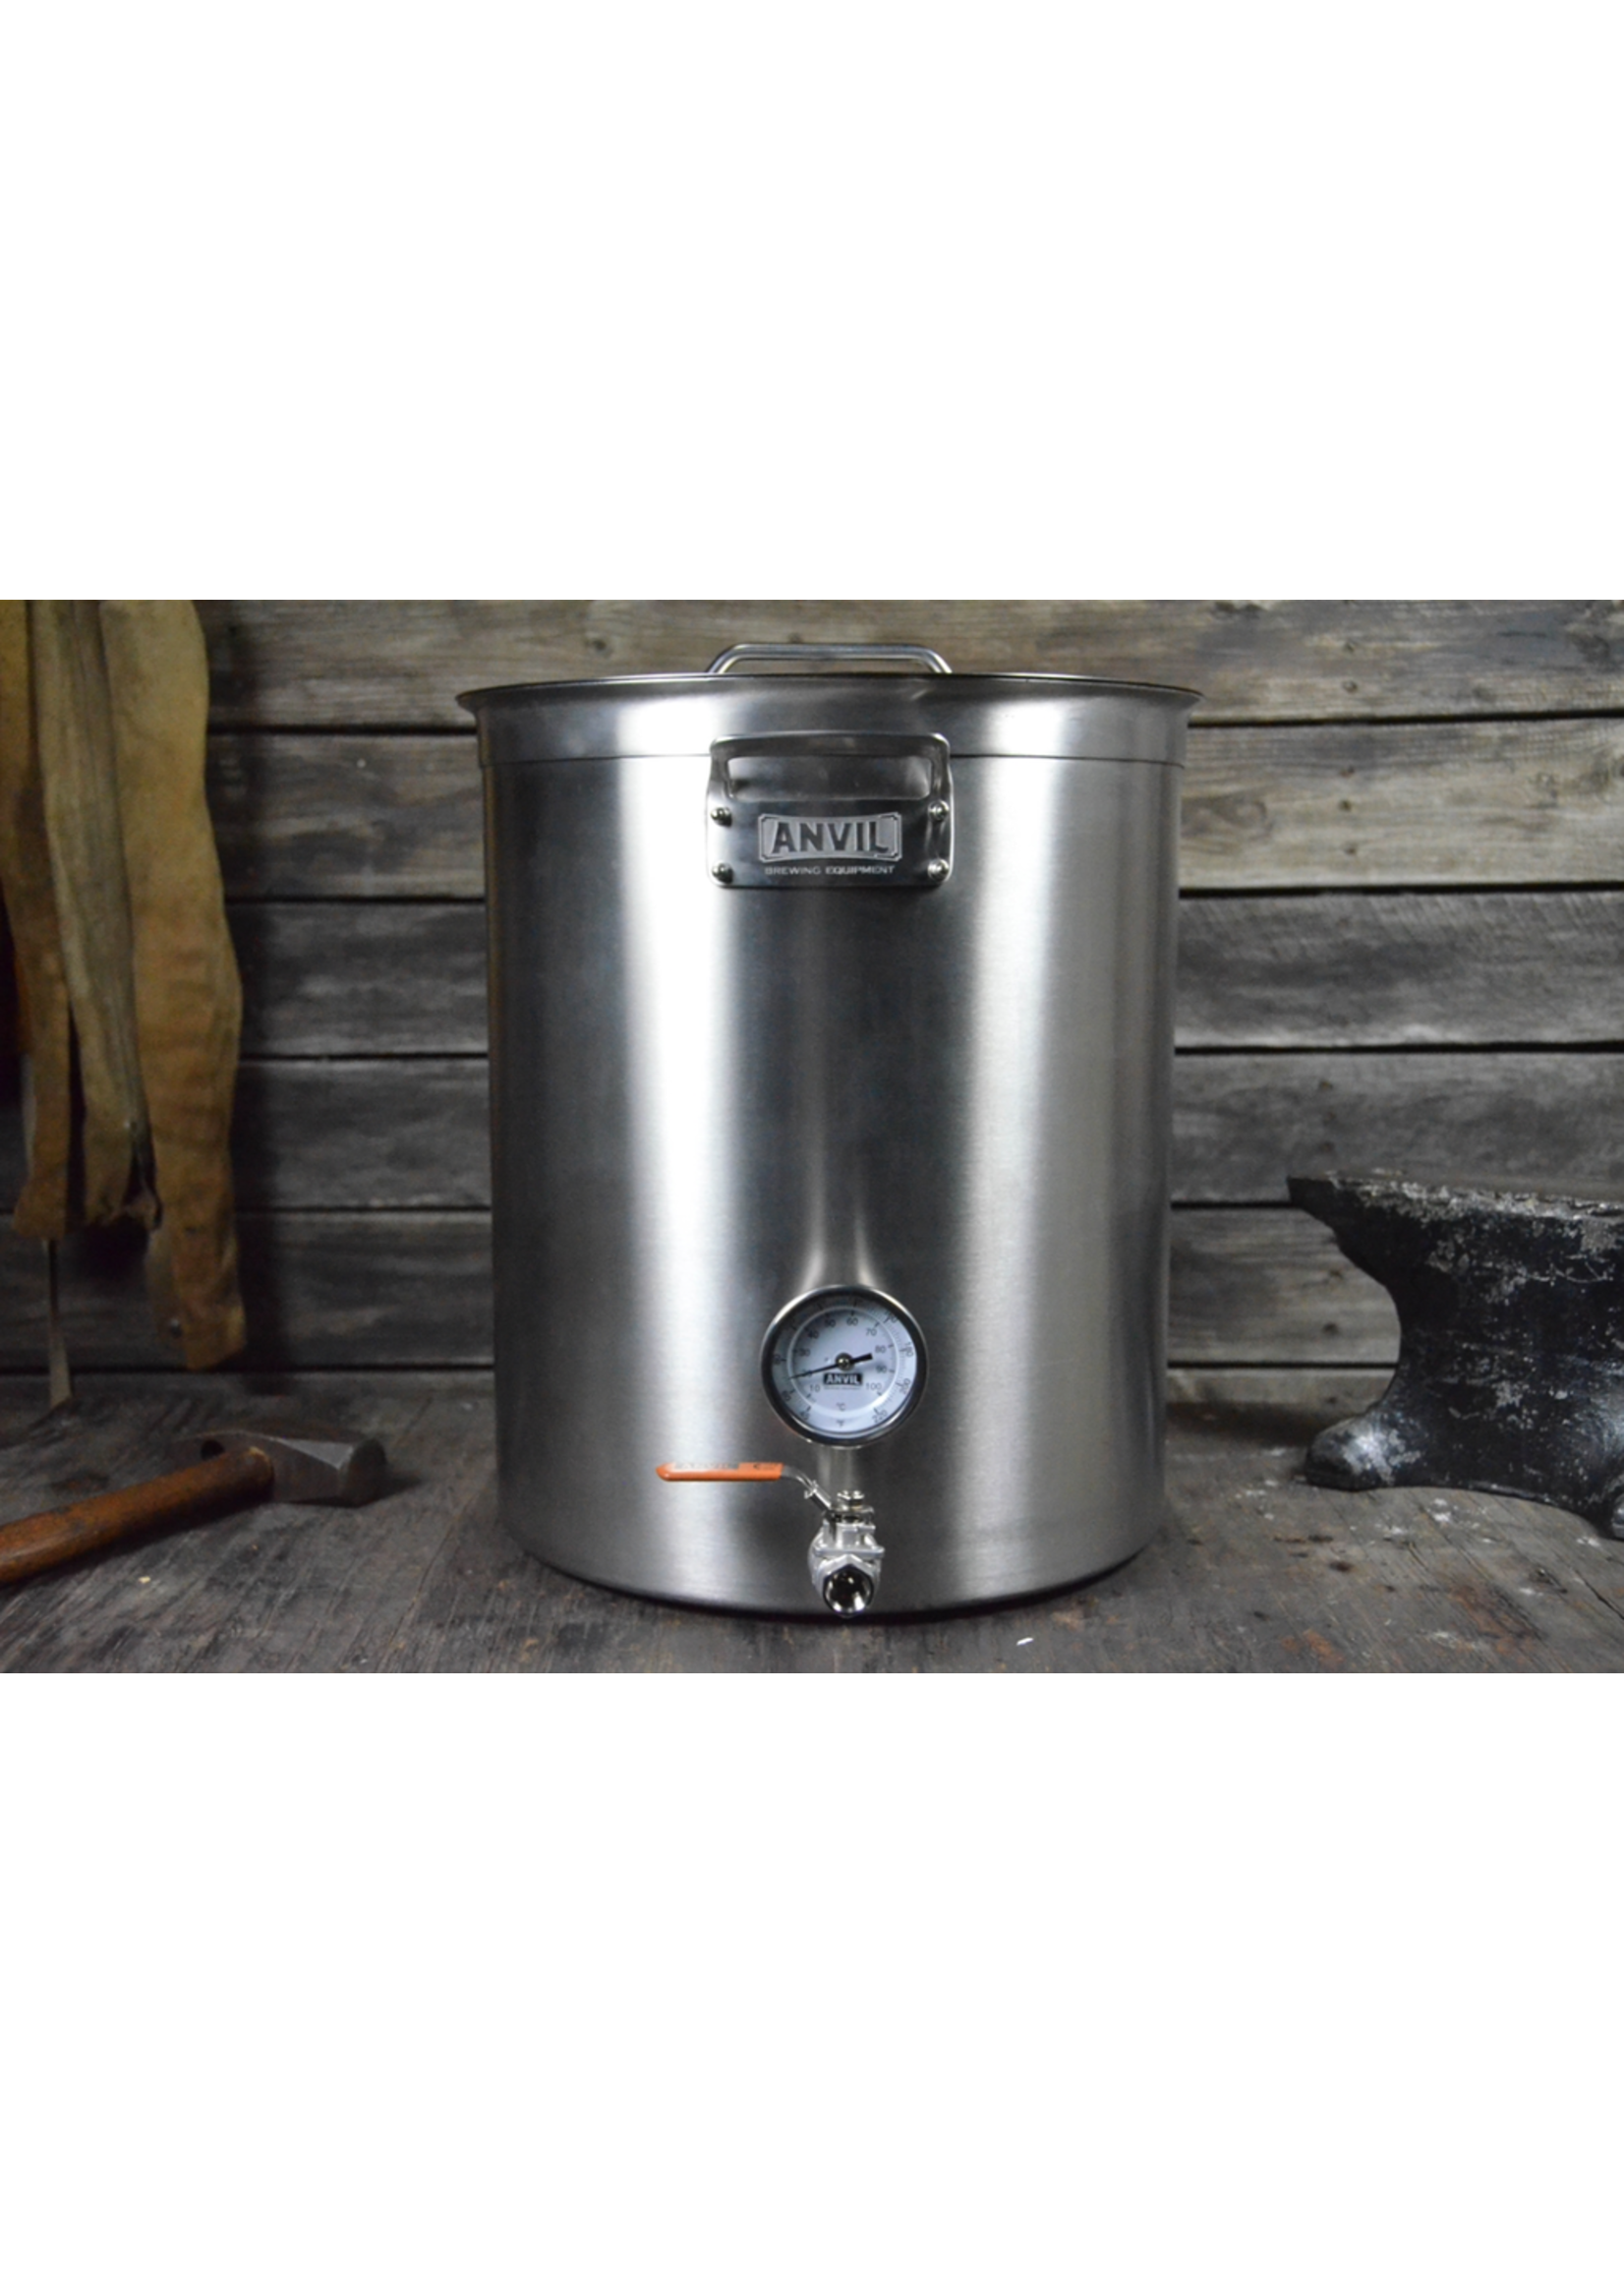 Brewing Anvil Brew Kettle 20 Gallons